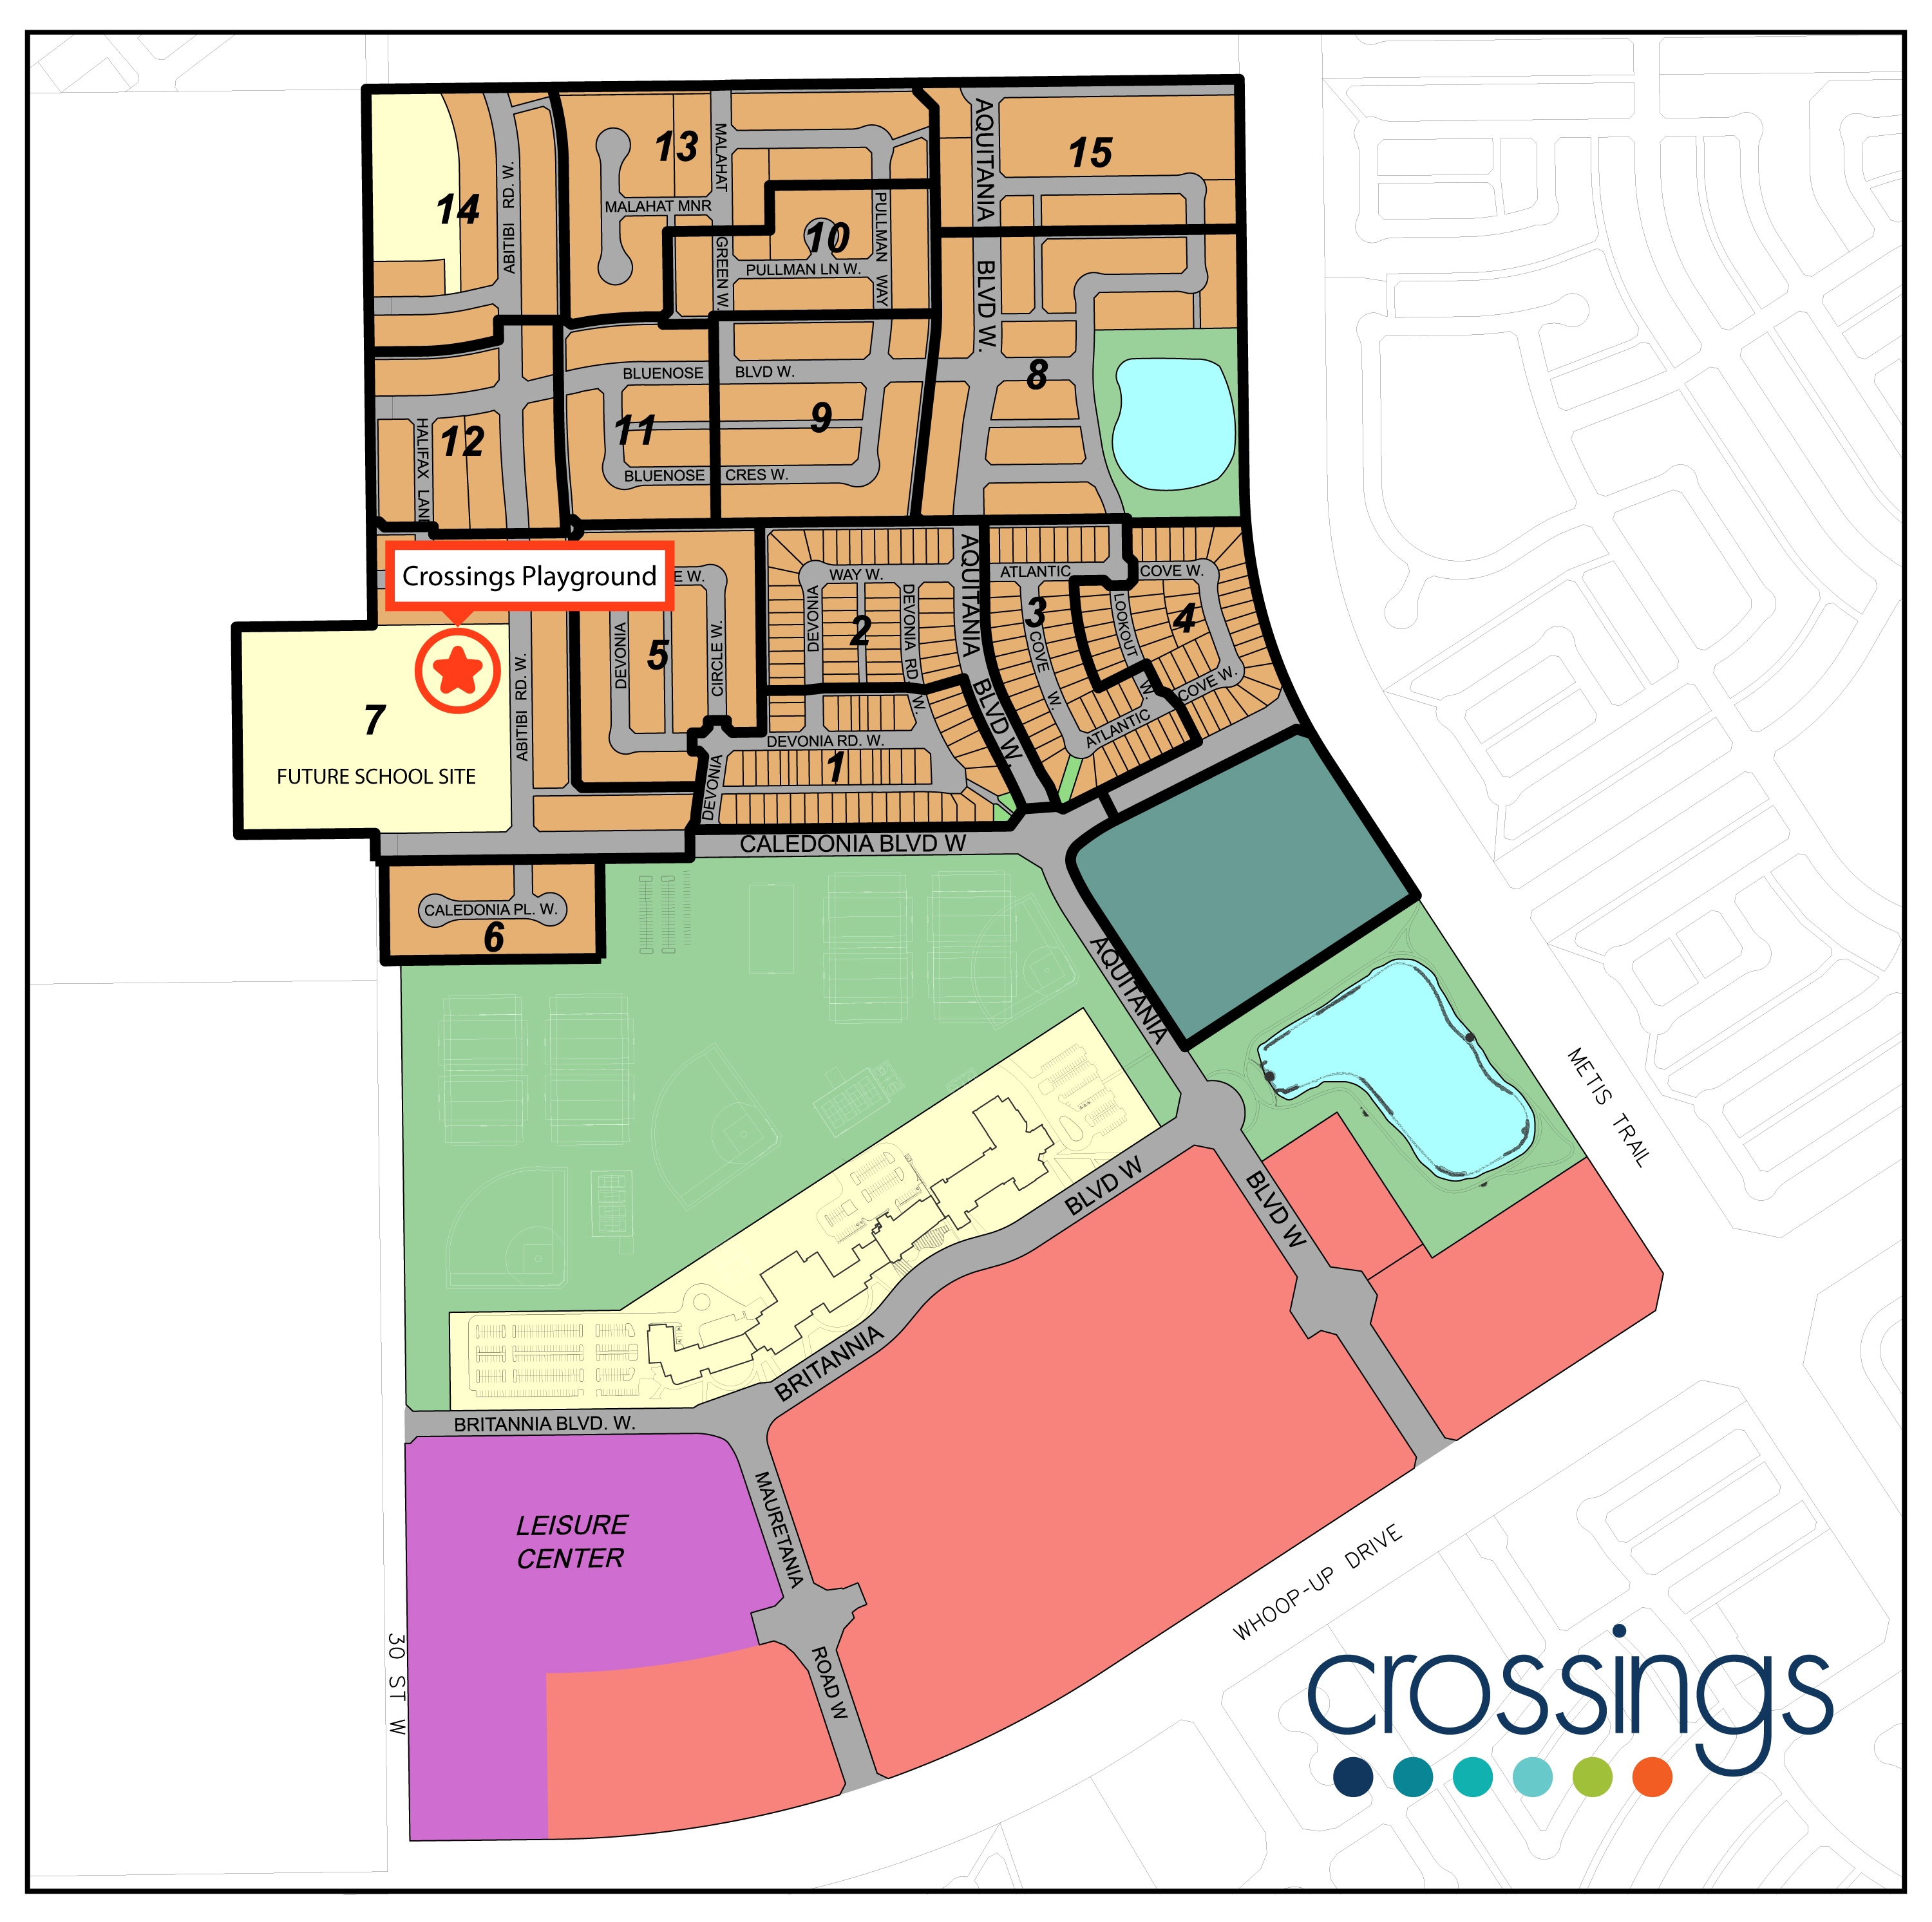 Crossings-Map_forum_park-location3.jpg